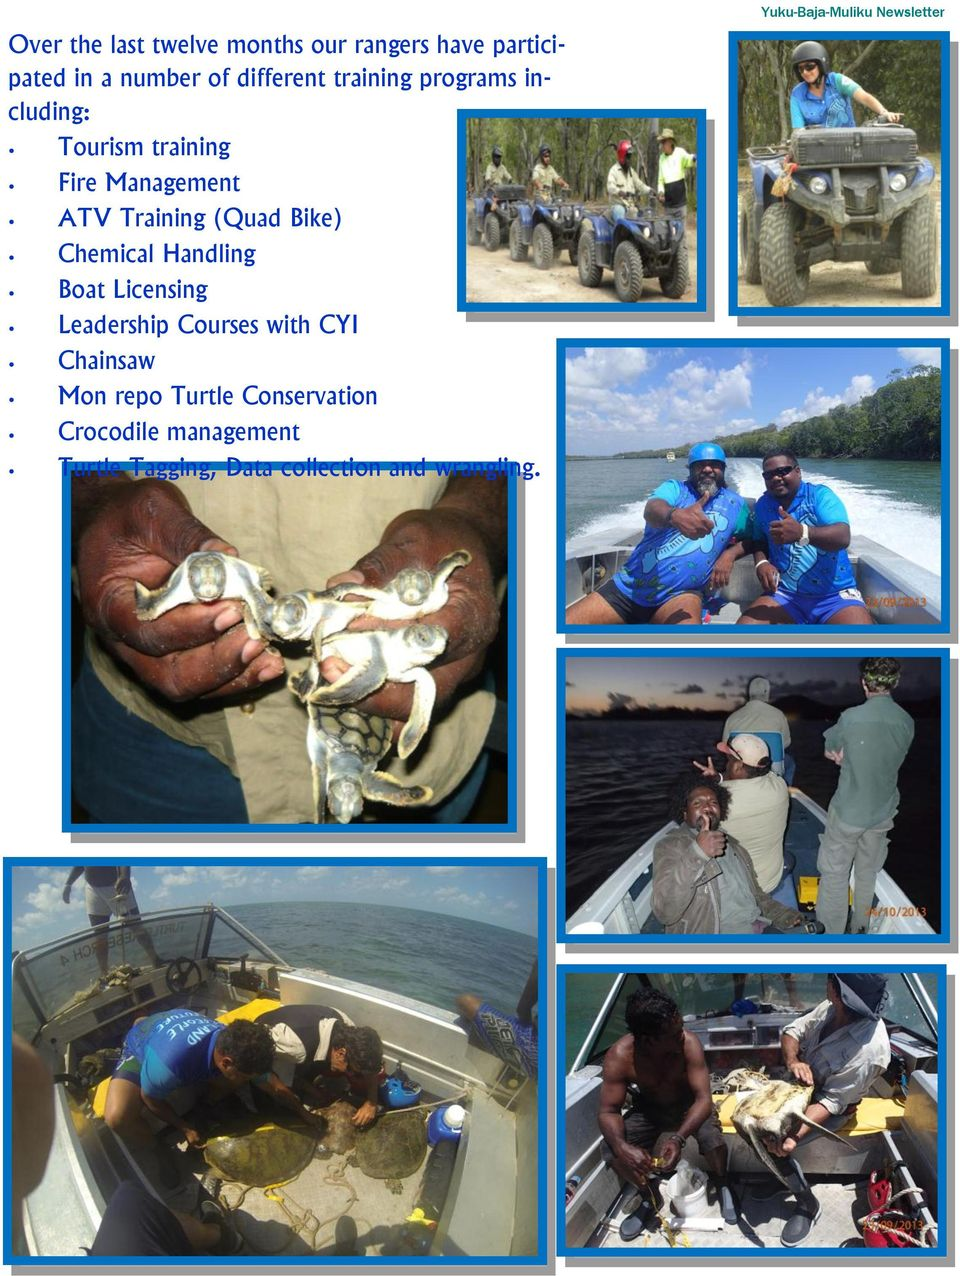 Chemical Handling Boat Licensing Leadership Courses with CYI Chainsaw Mon repo Turtle